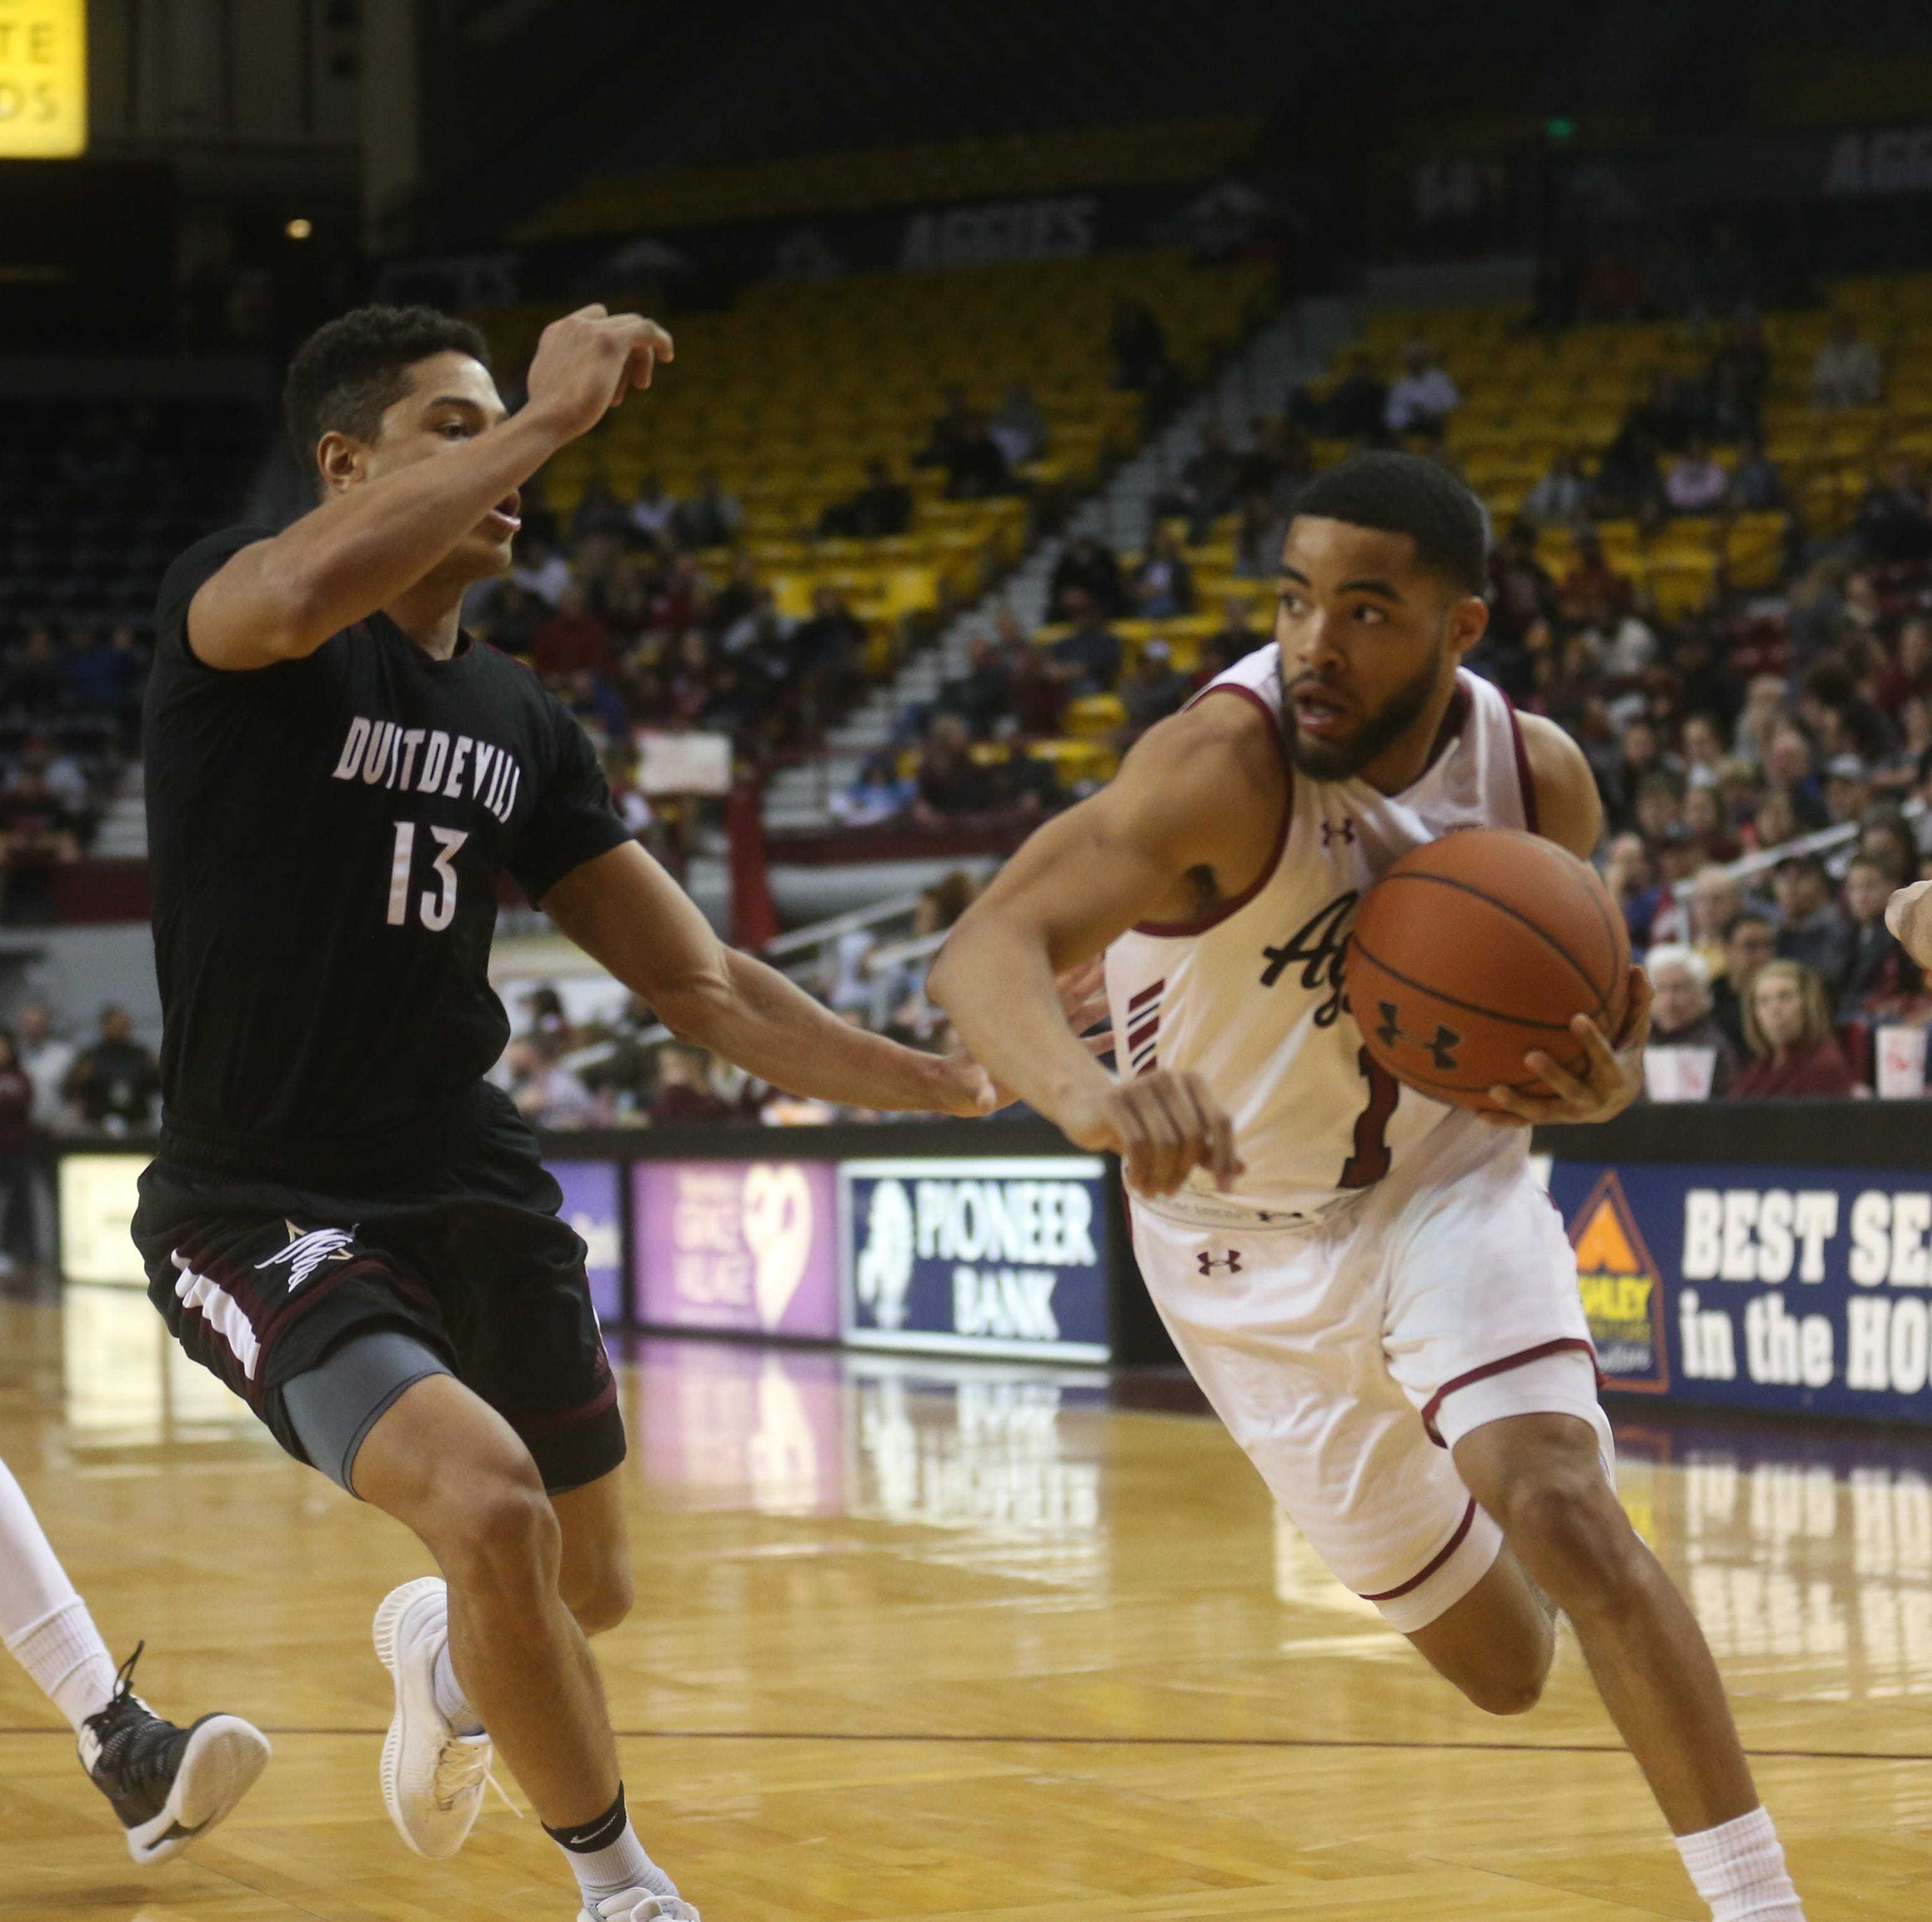 Aggies go for fifth WAC regular season title on Saturday